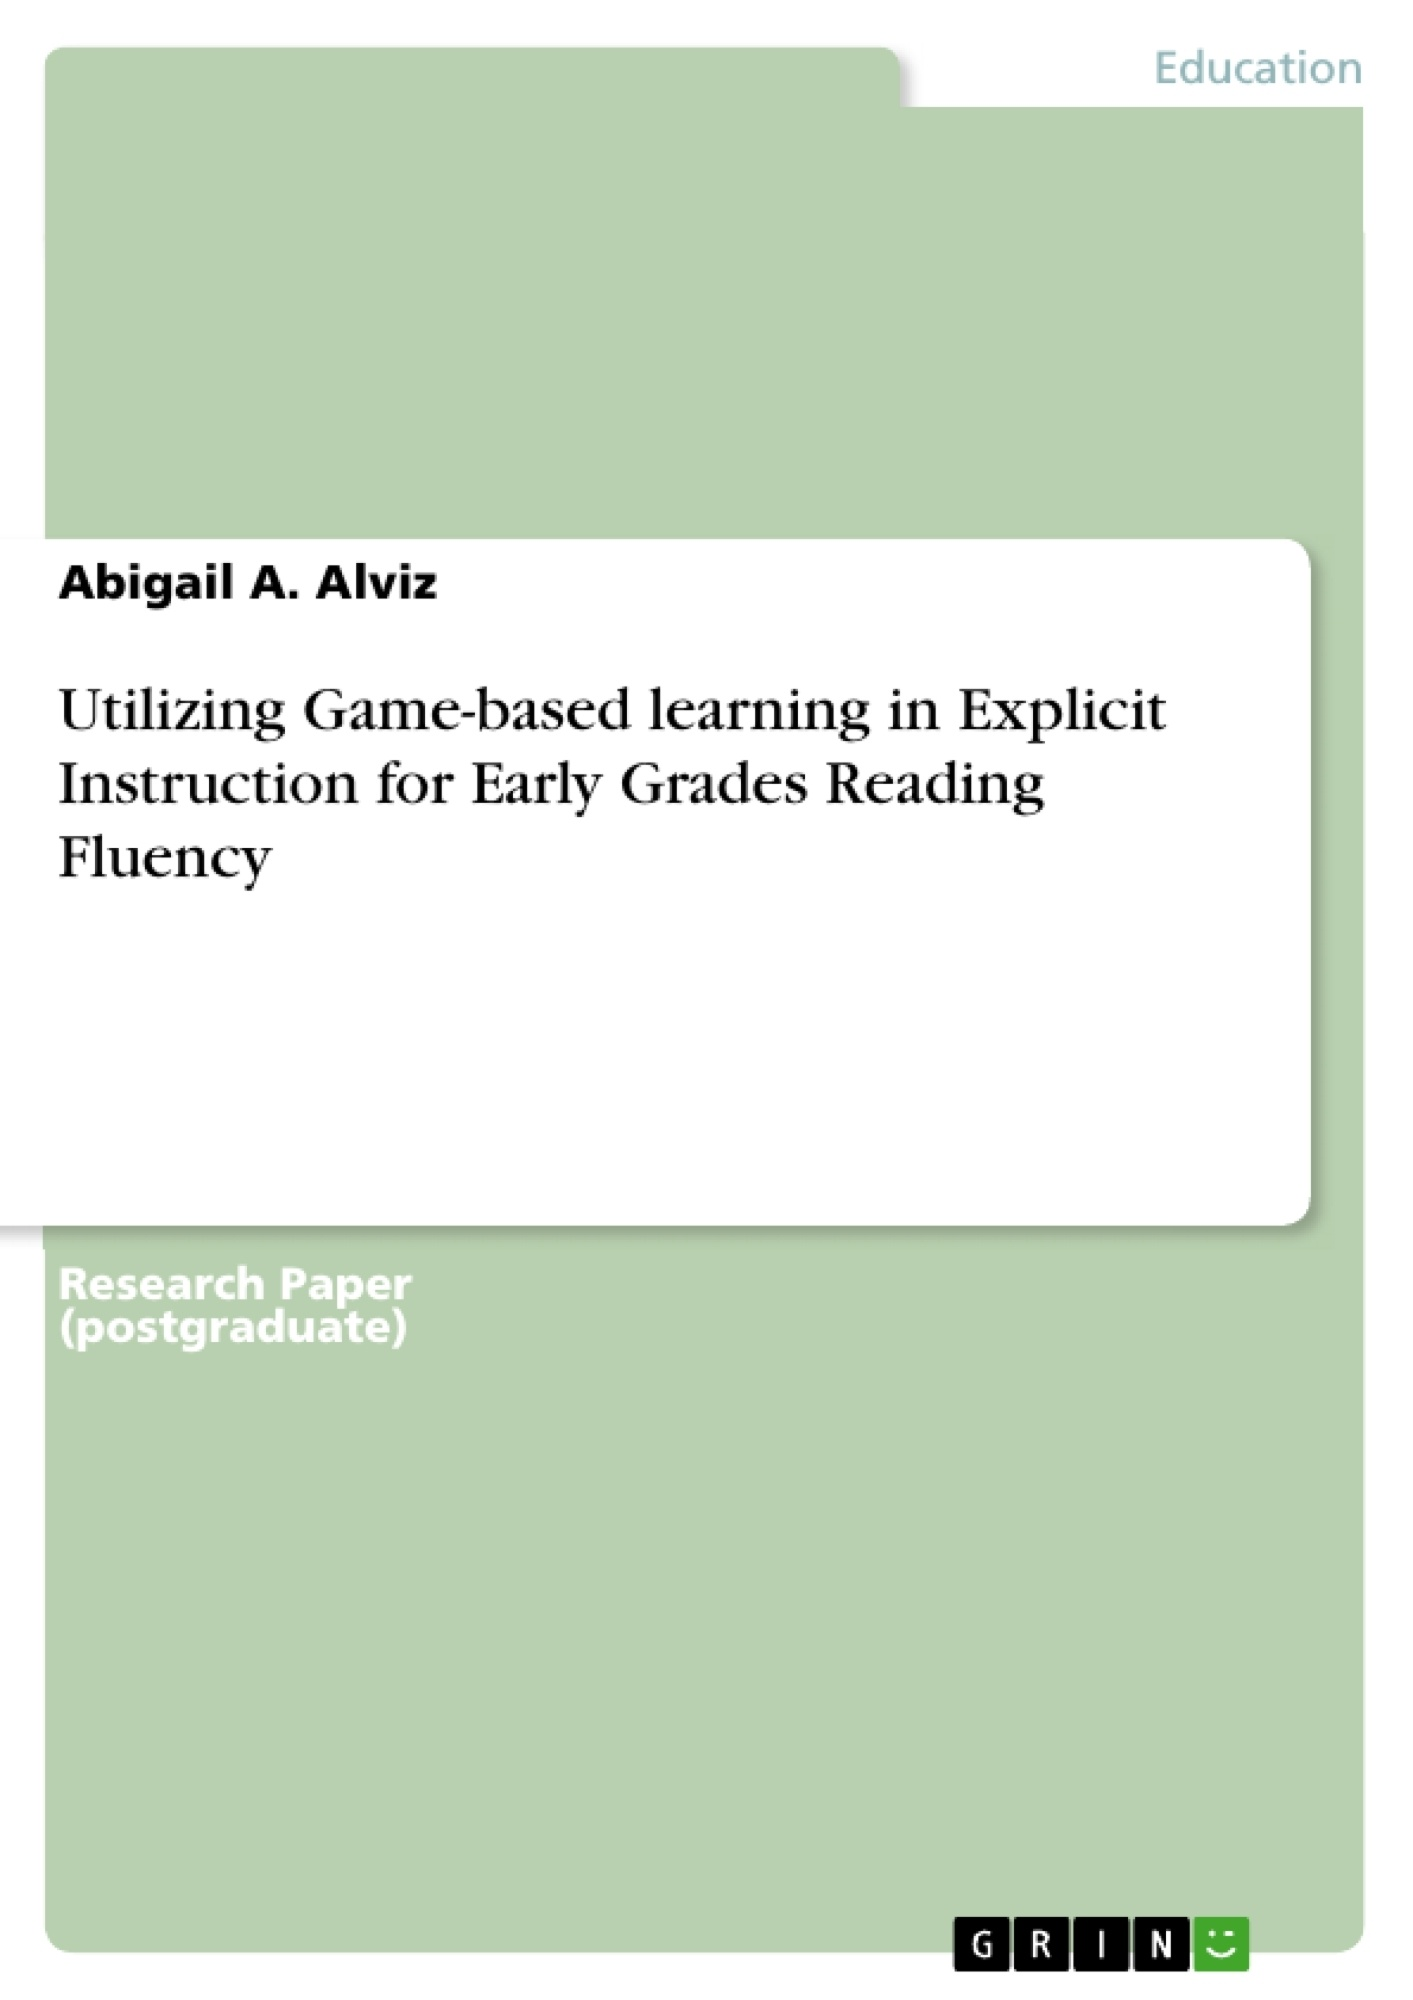 Title: Utilizing Game-based learning in Explicit Instruction for Early Grades Reading Fluency